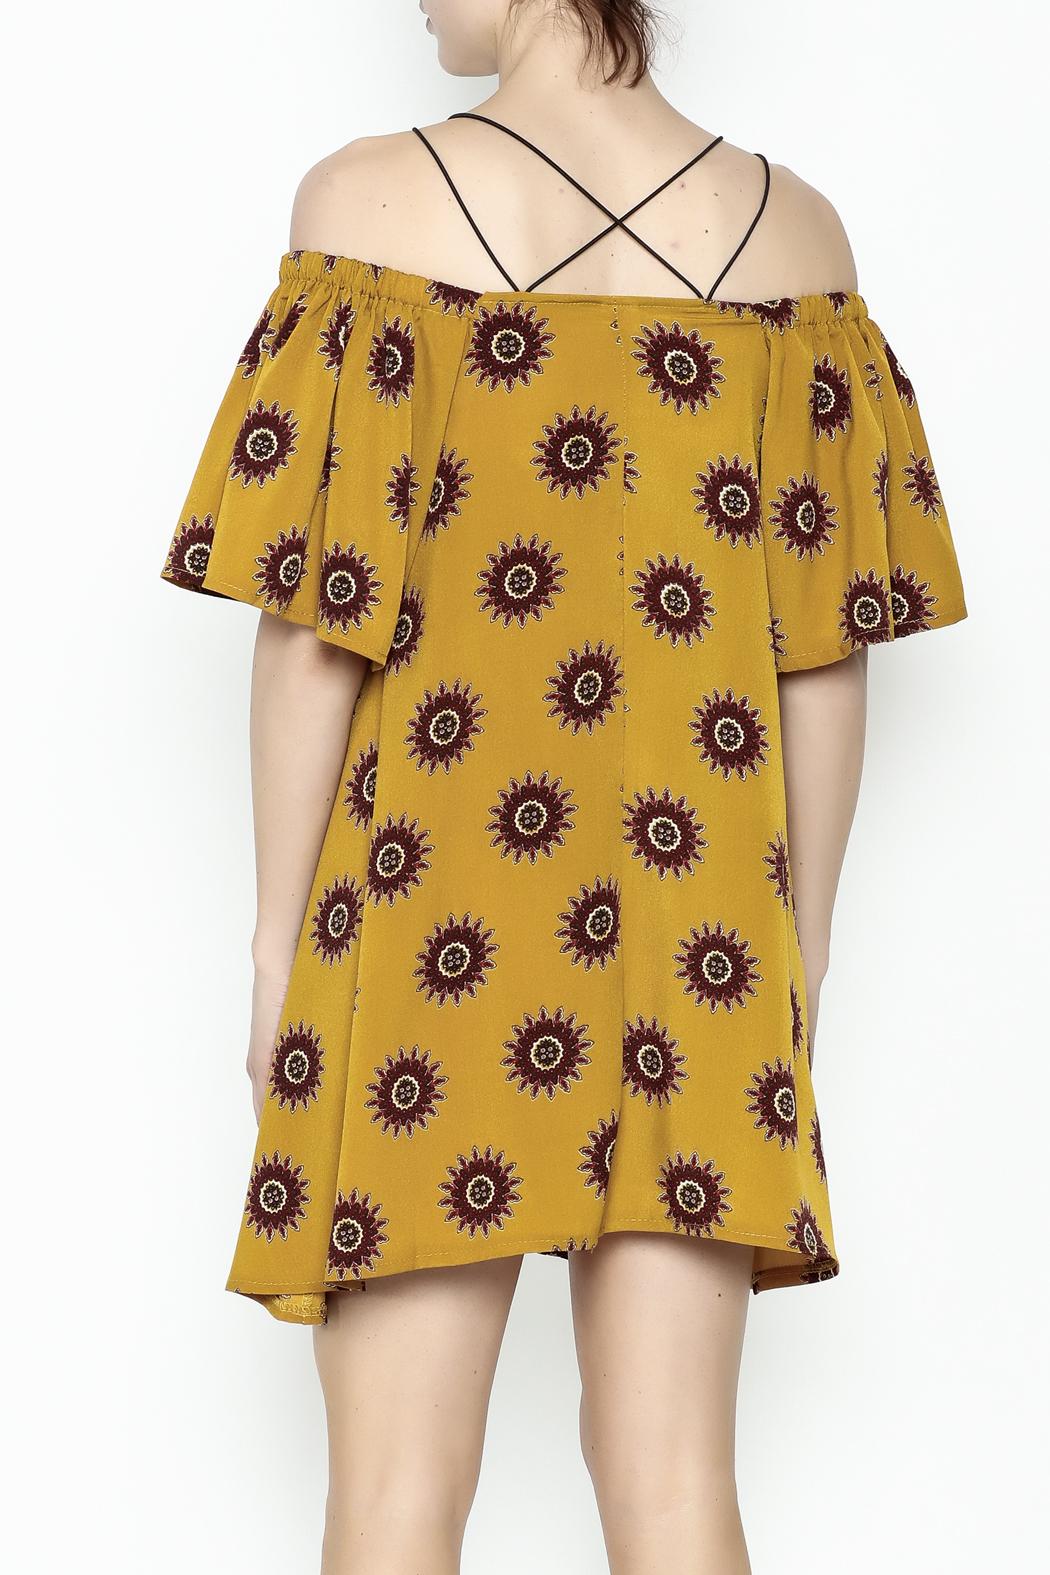 Fashion Pickle Yellow Cold Shoulder Dress - Back Cropped Image